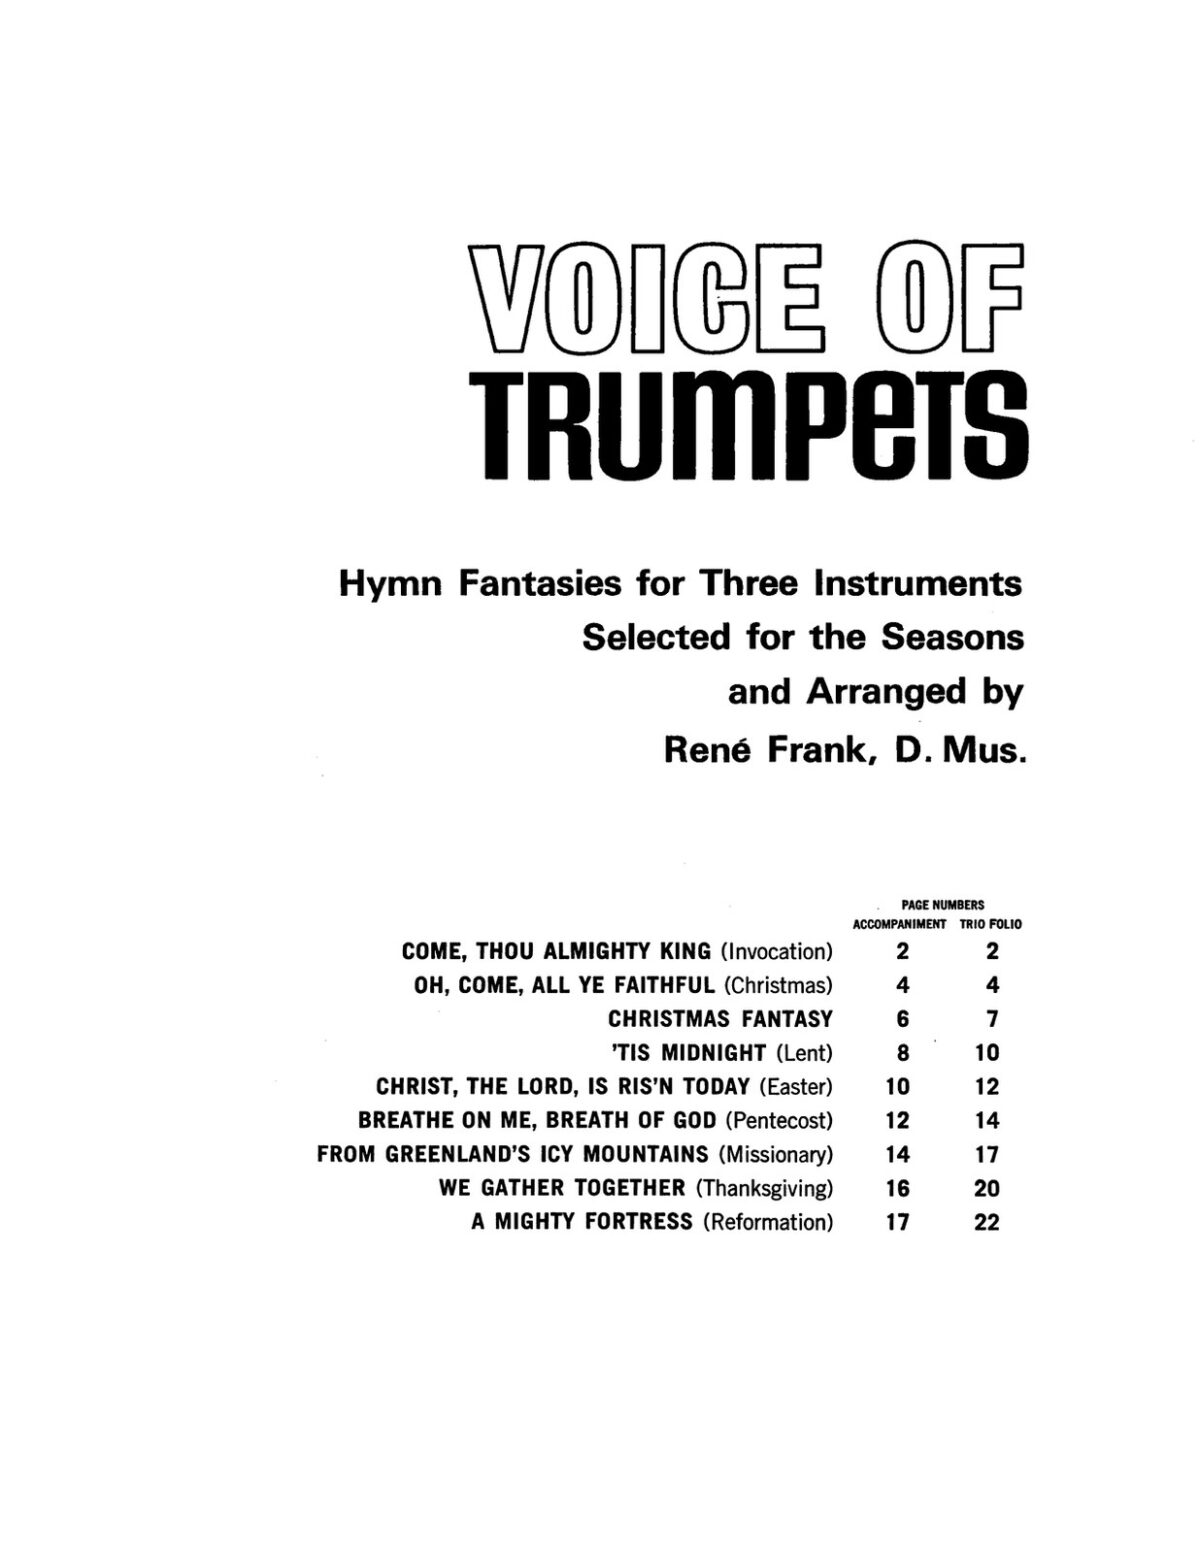 Frank, Voice of Trumpets, Hymn Fantasies for Three Instruments-p03